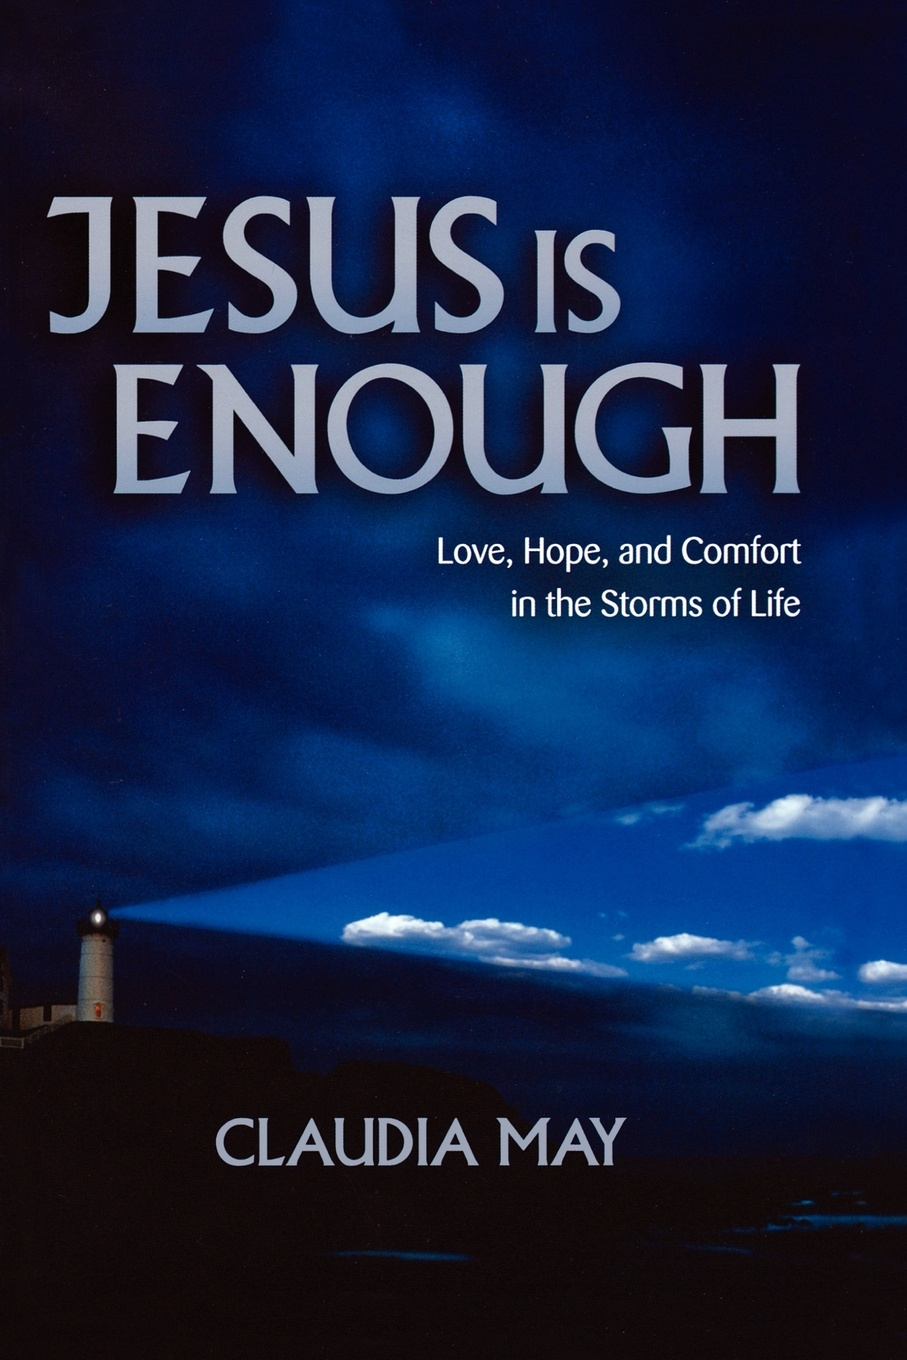 Jesus Is Enough. Love, Hope, and Comfort in the Storms of Life